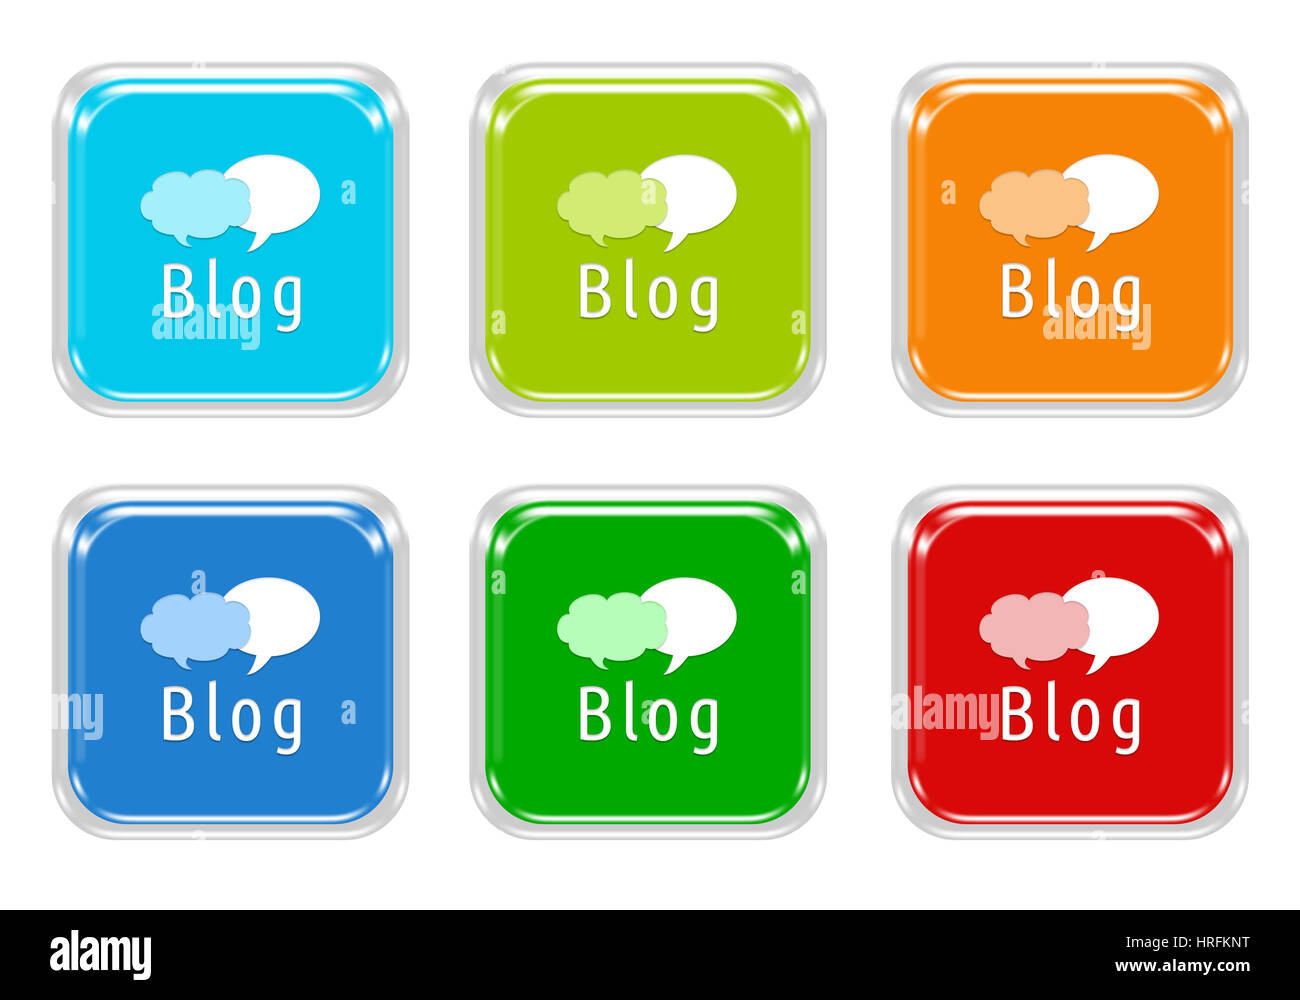 Set Of Squared Colorful Buttons With Blog Symbol In Blue Green Red